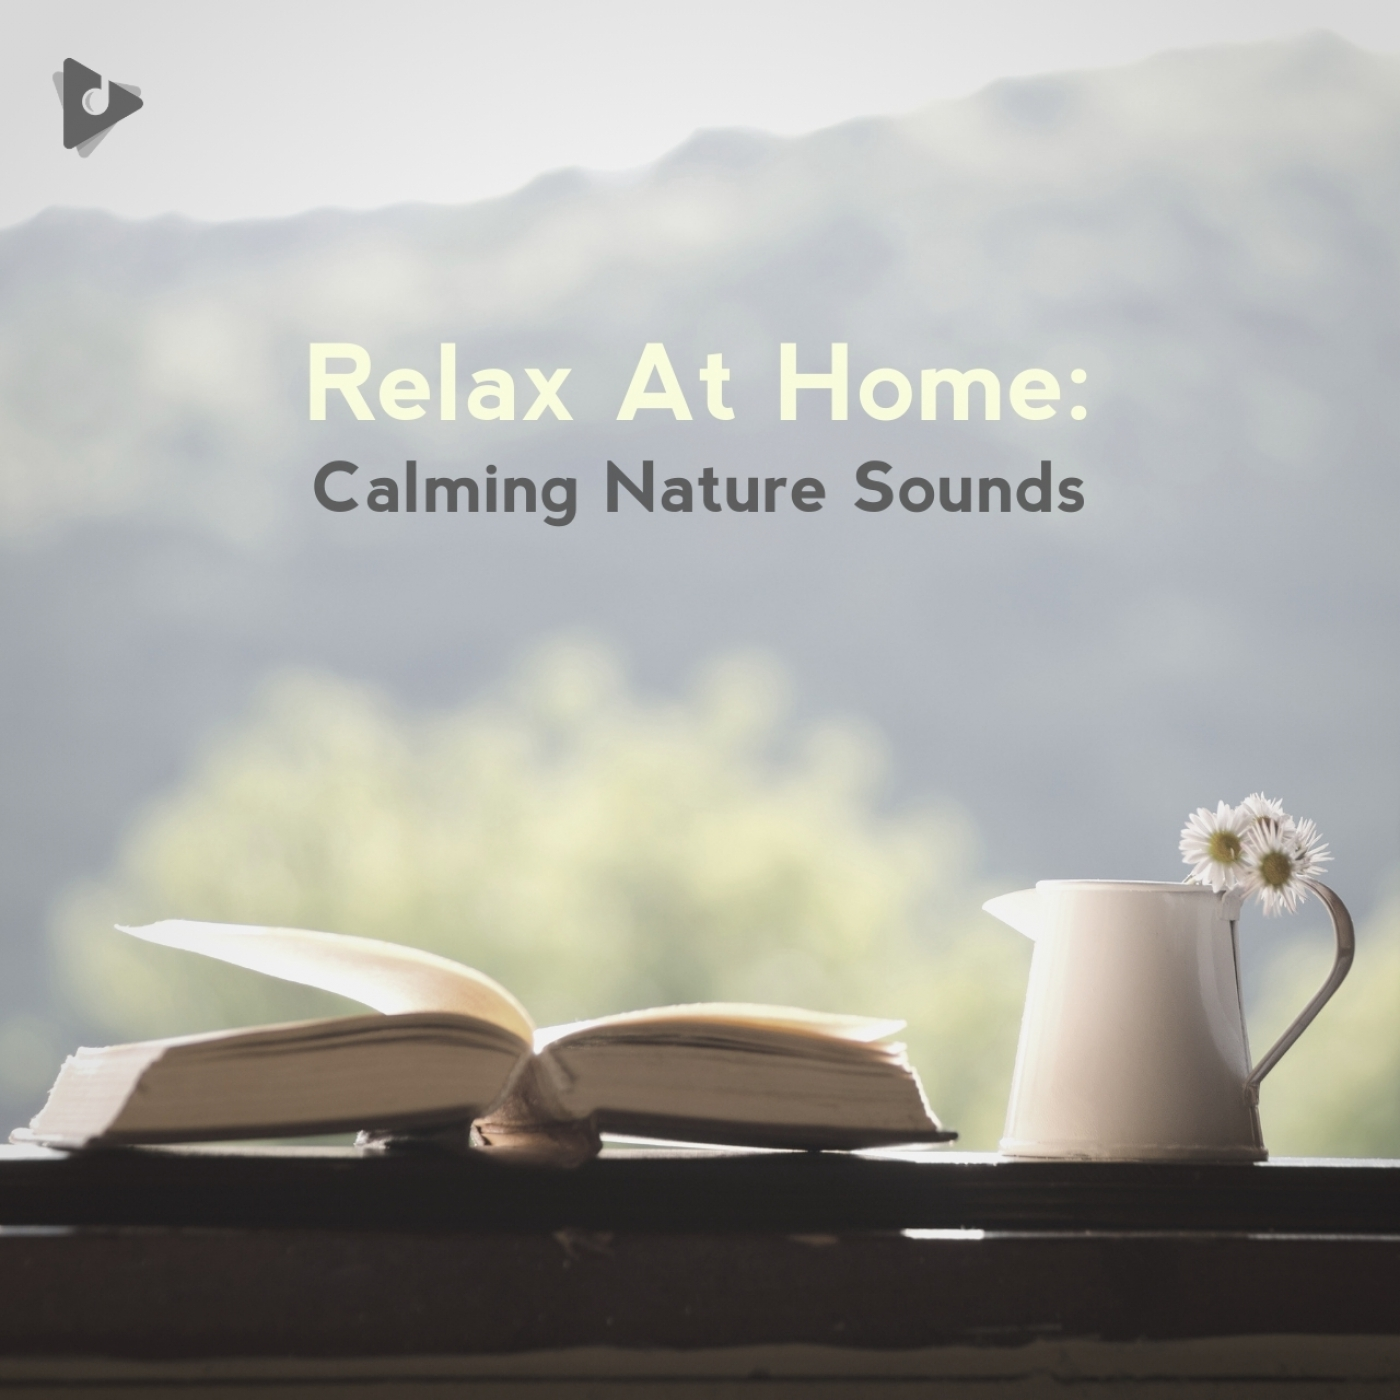 Relax At Home: Calming Nature Sounds